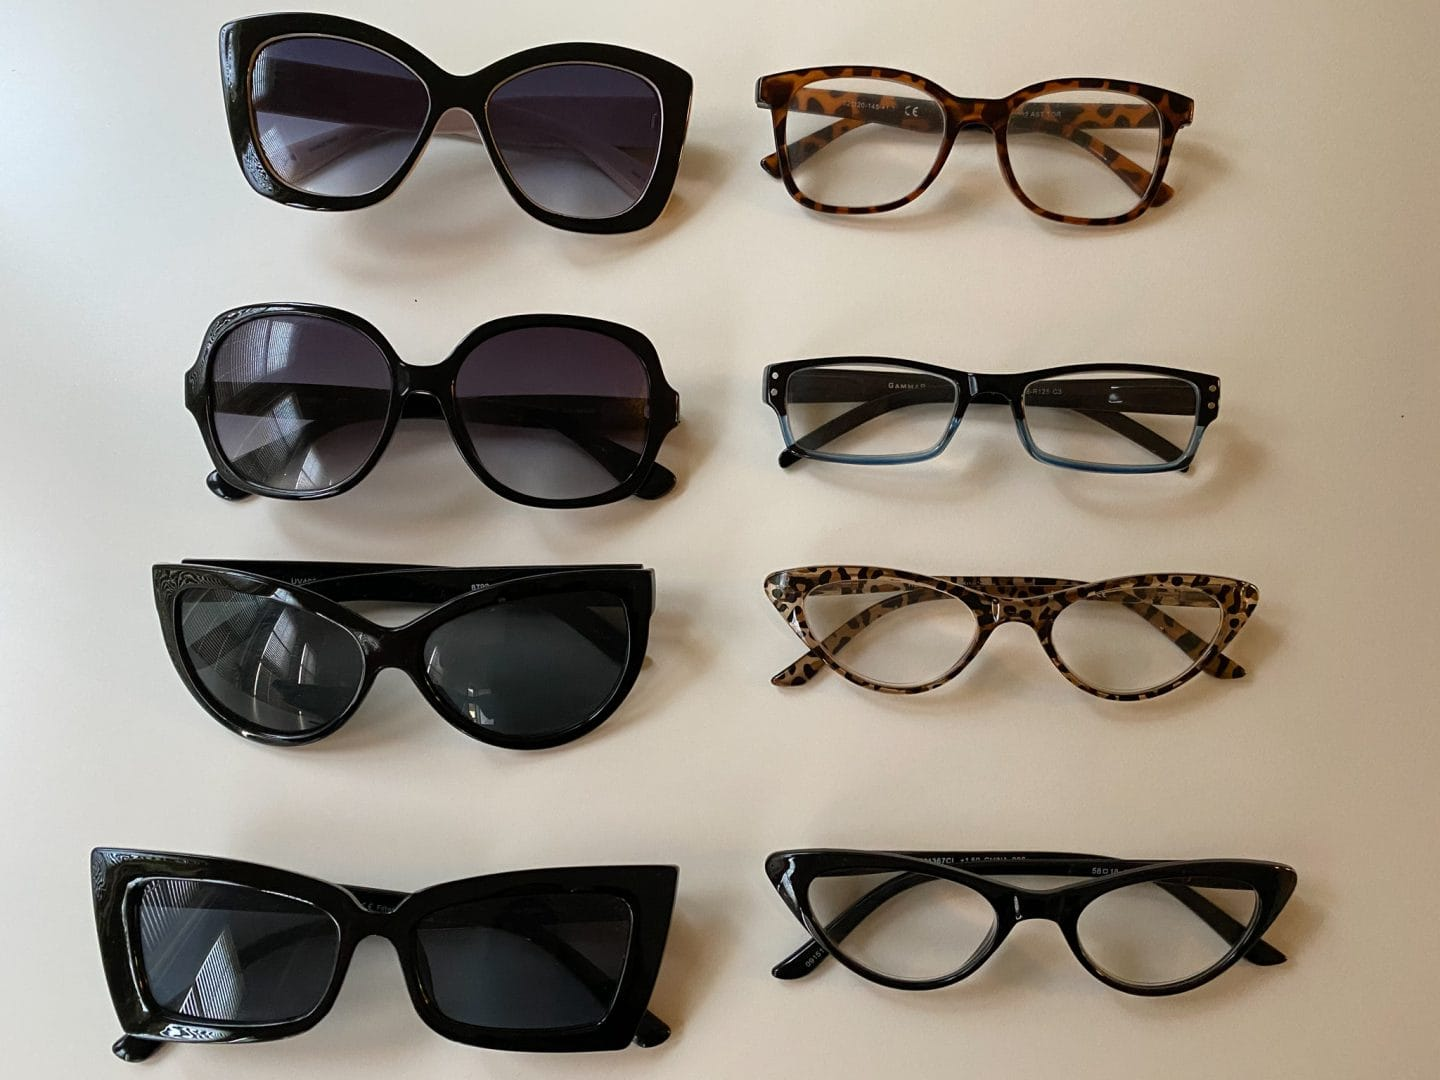 Image of two rows of glasses, one of sunglasses, the other reading glasses, against a white background.